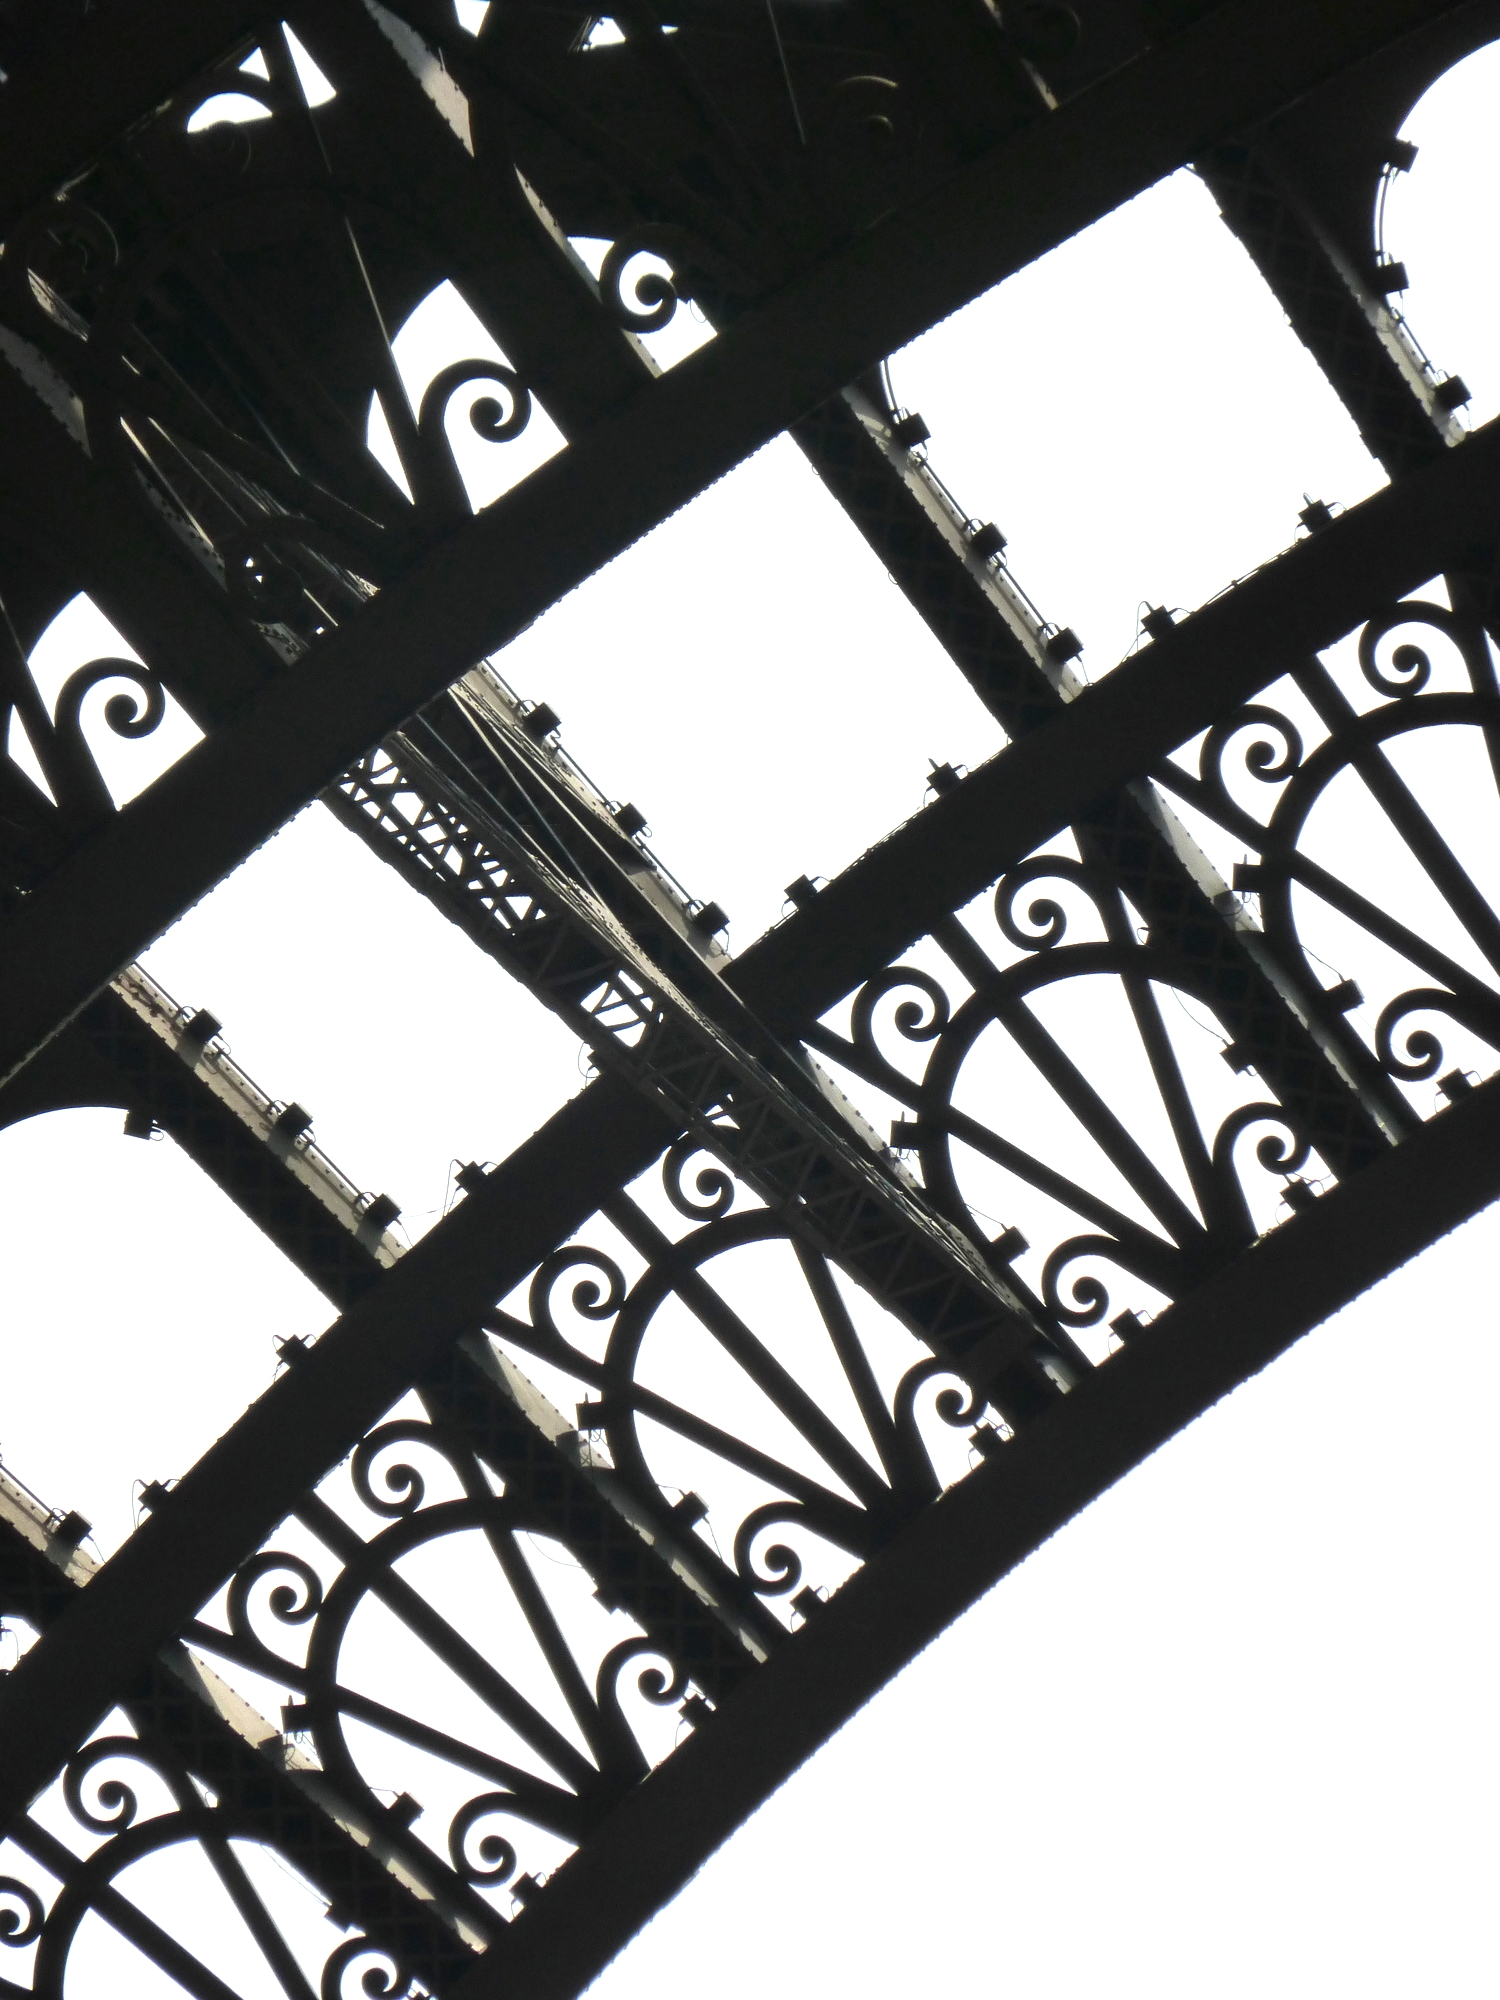 The massive, yet delicate appearing ironwork on the Tour de Eiffel.